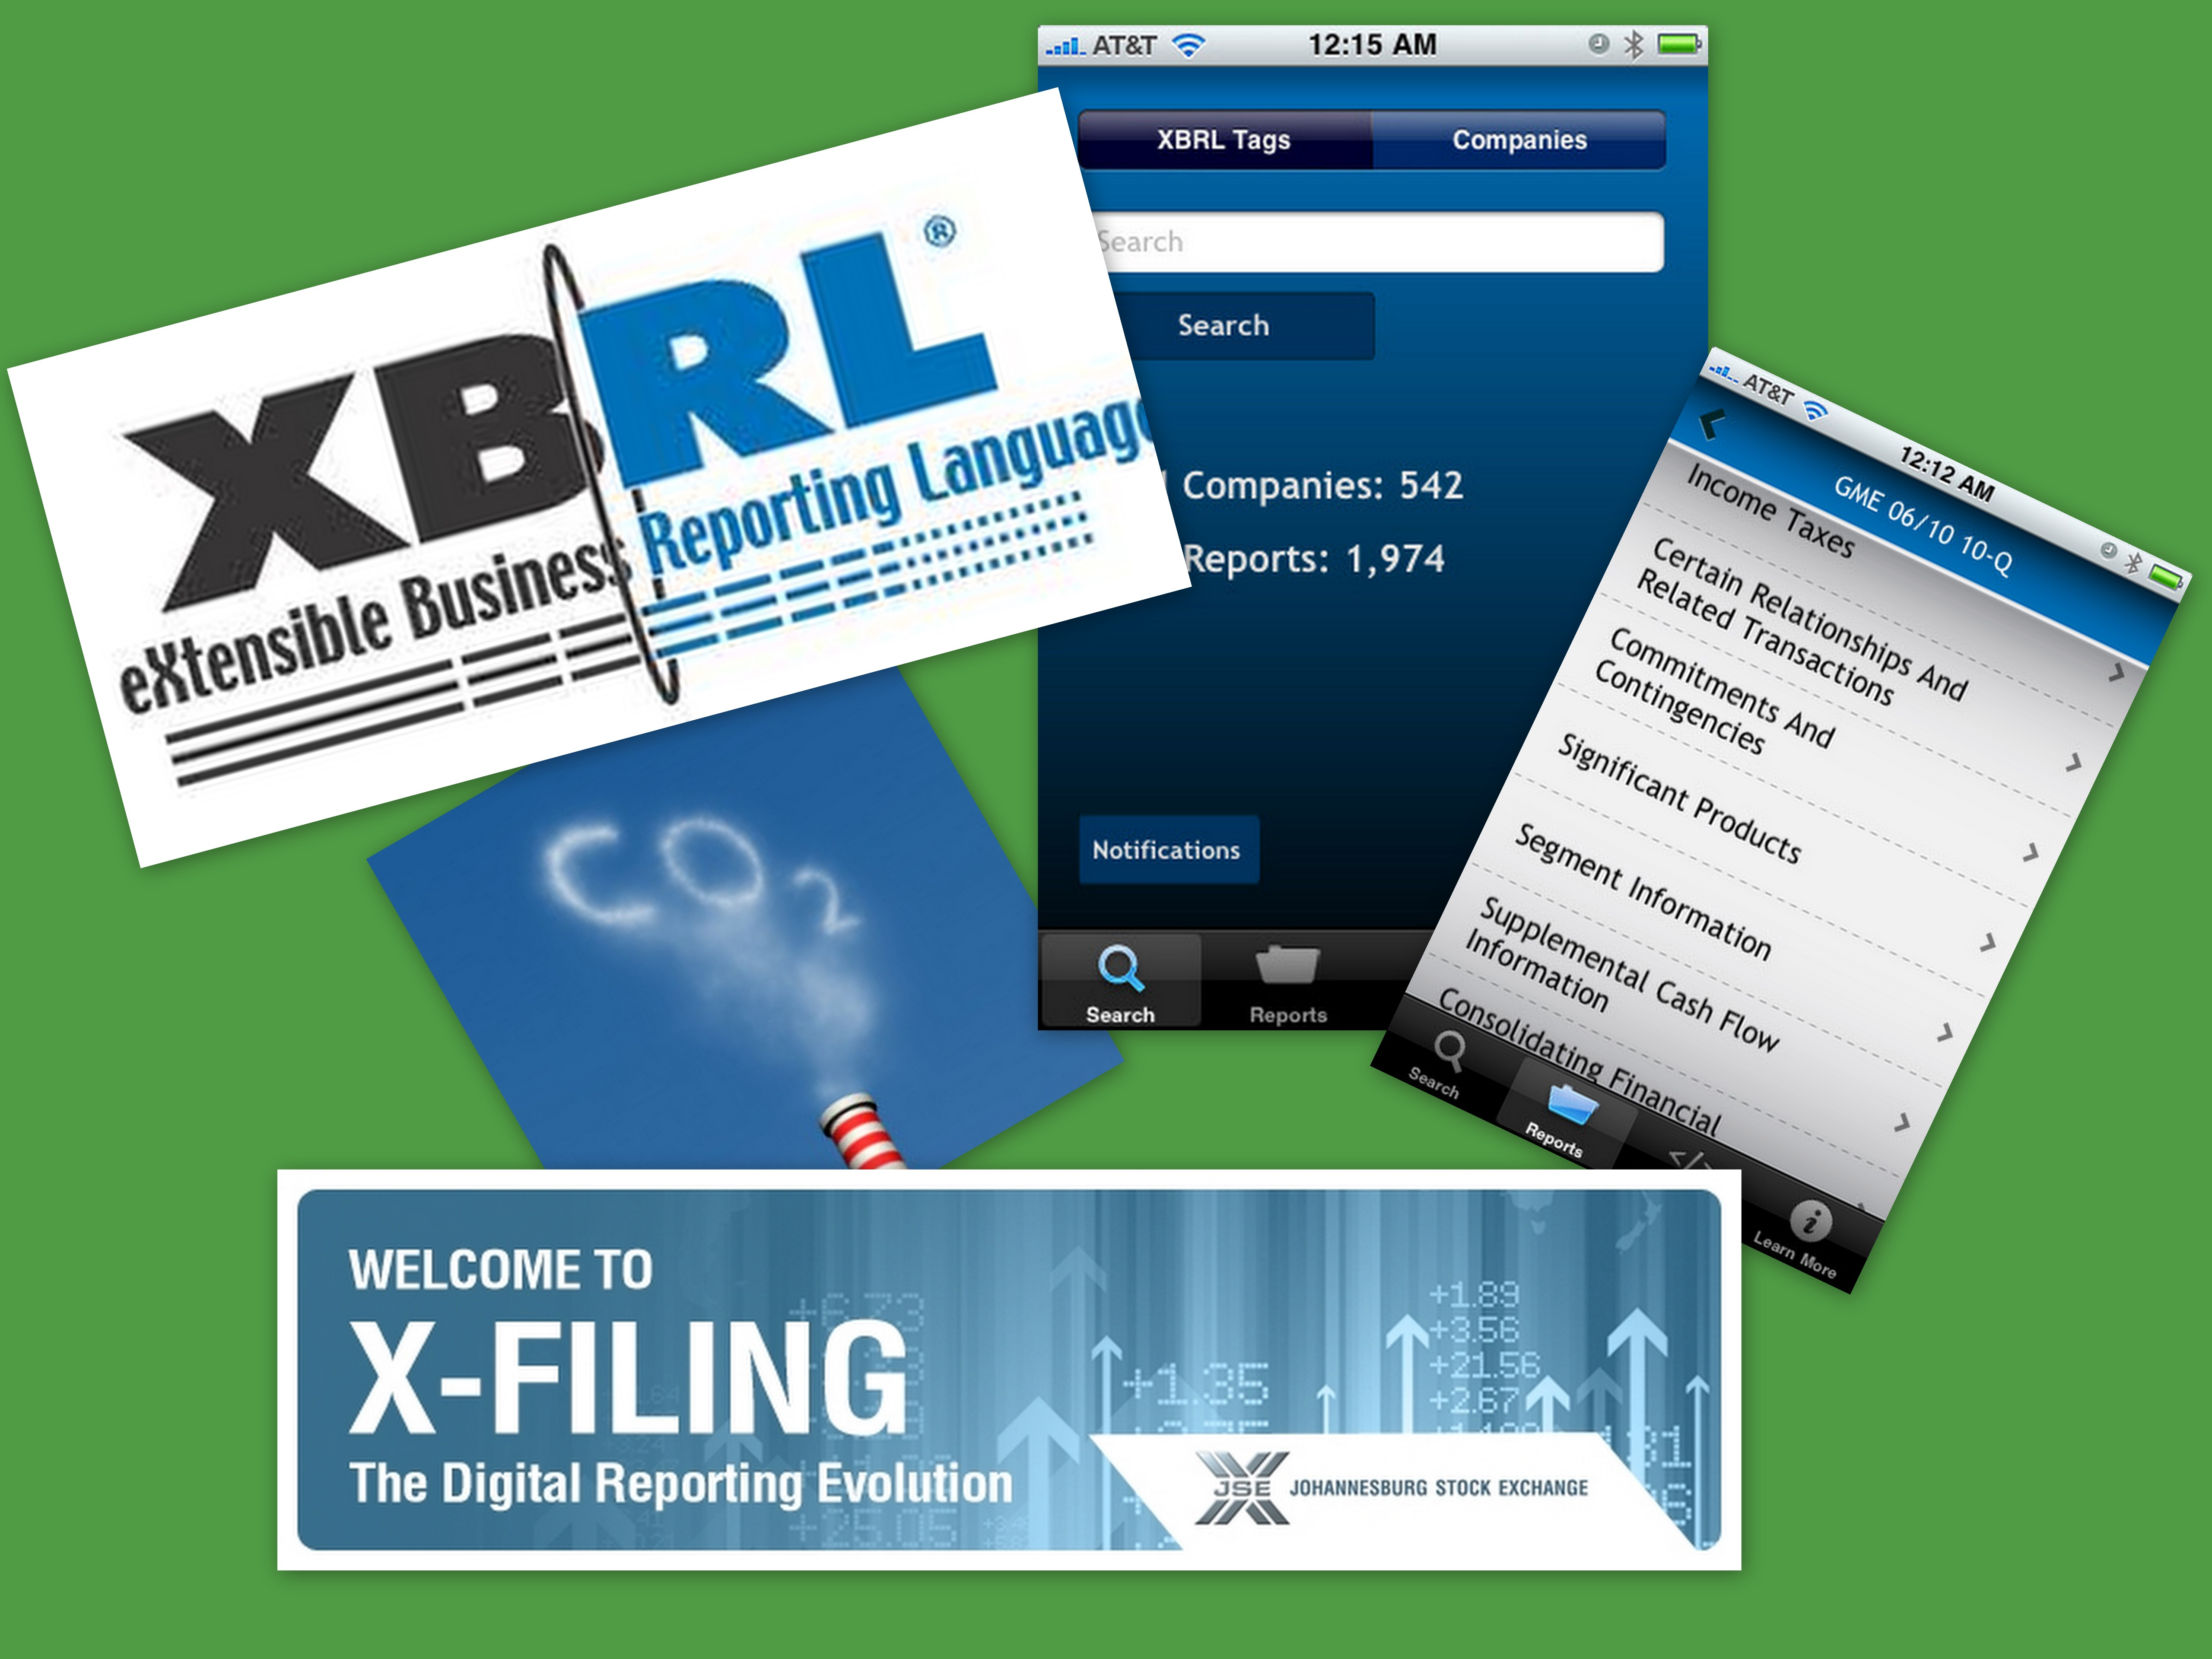 xbrl research paper This paper informs business instructors and educators about xbrl (extensible business reporting language) so that keywords: business education financial reporting business reporting language xbrl xml an introduction to xbrl through the use of research and technical assignments volume 20 (1.